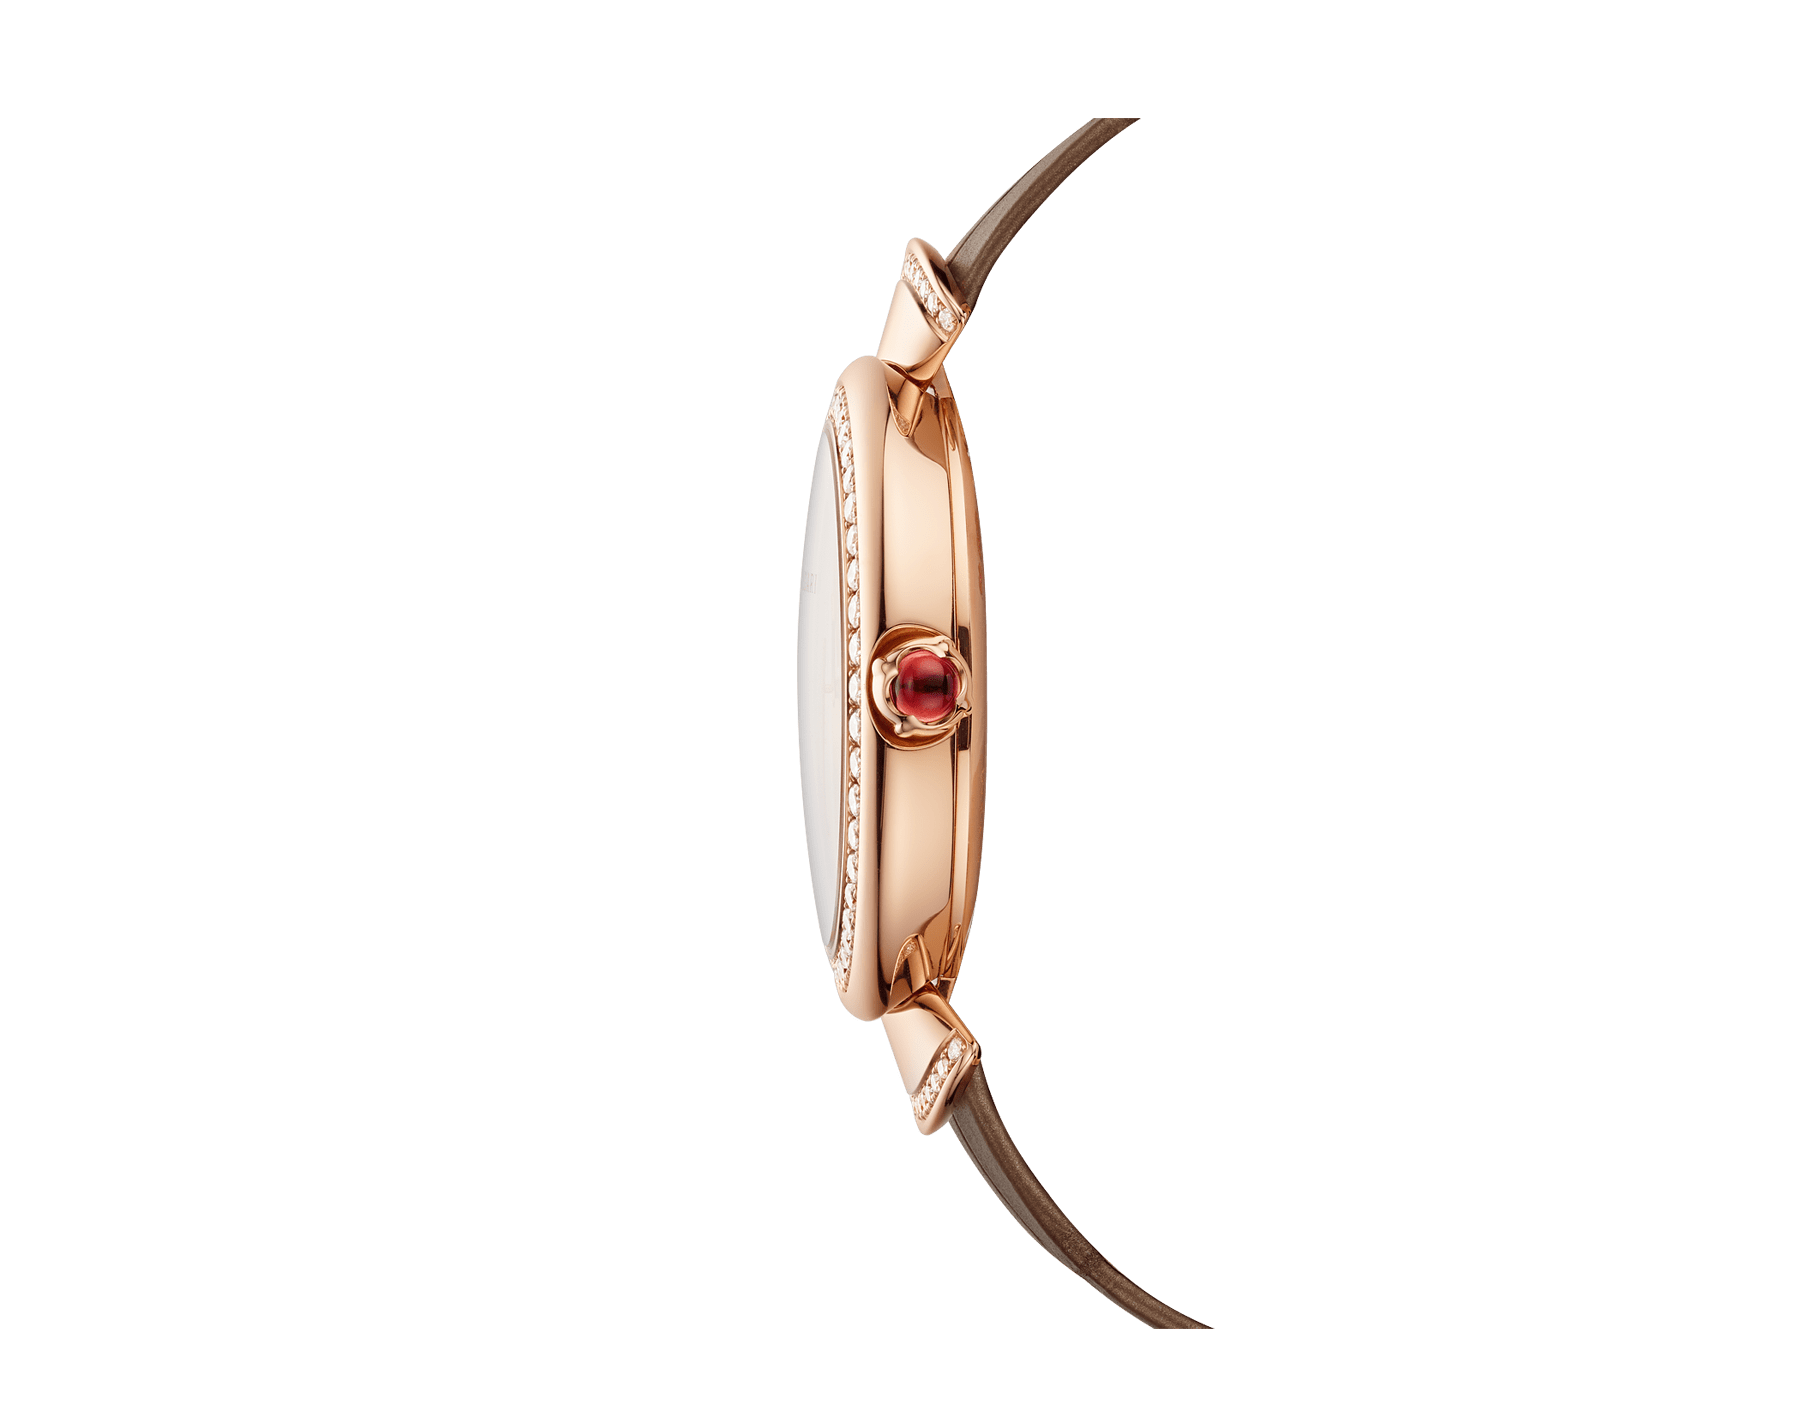 DIVAS' DREAM watch with in-house manufacture mechanical movement, automatic winding, 18 kt rose gold case, 18 kt rose gold bezel and fan-shaped links both set with brilliant-cut diamonds, natural peacock feather dial and shiny beige alligator strap 103139 image 3